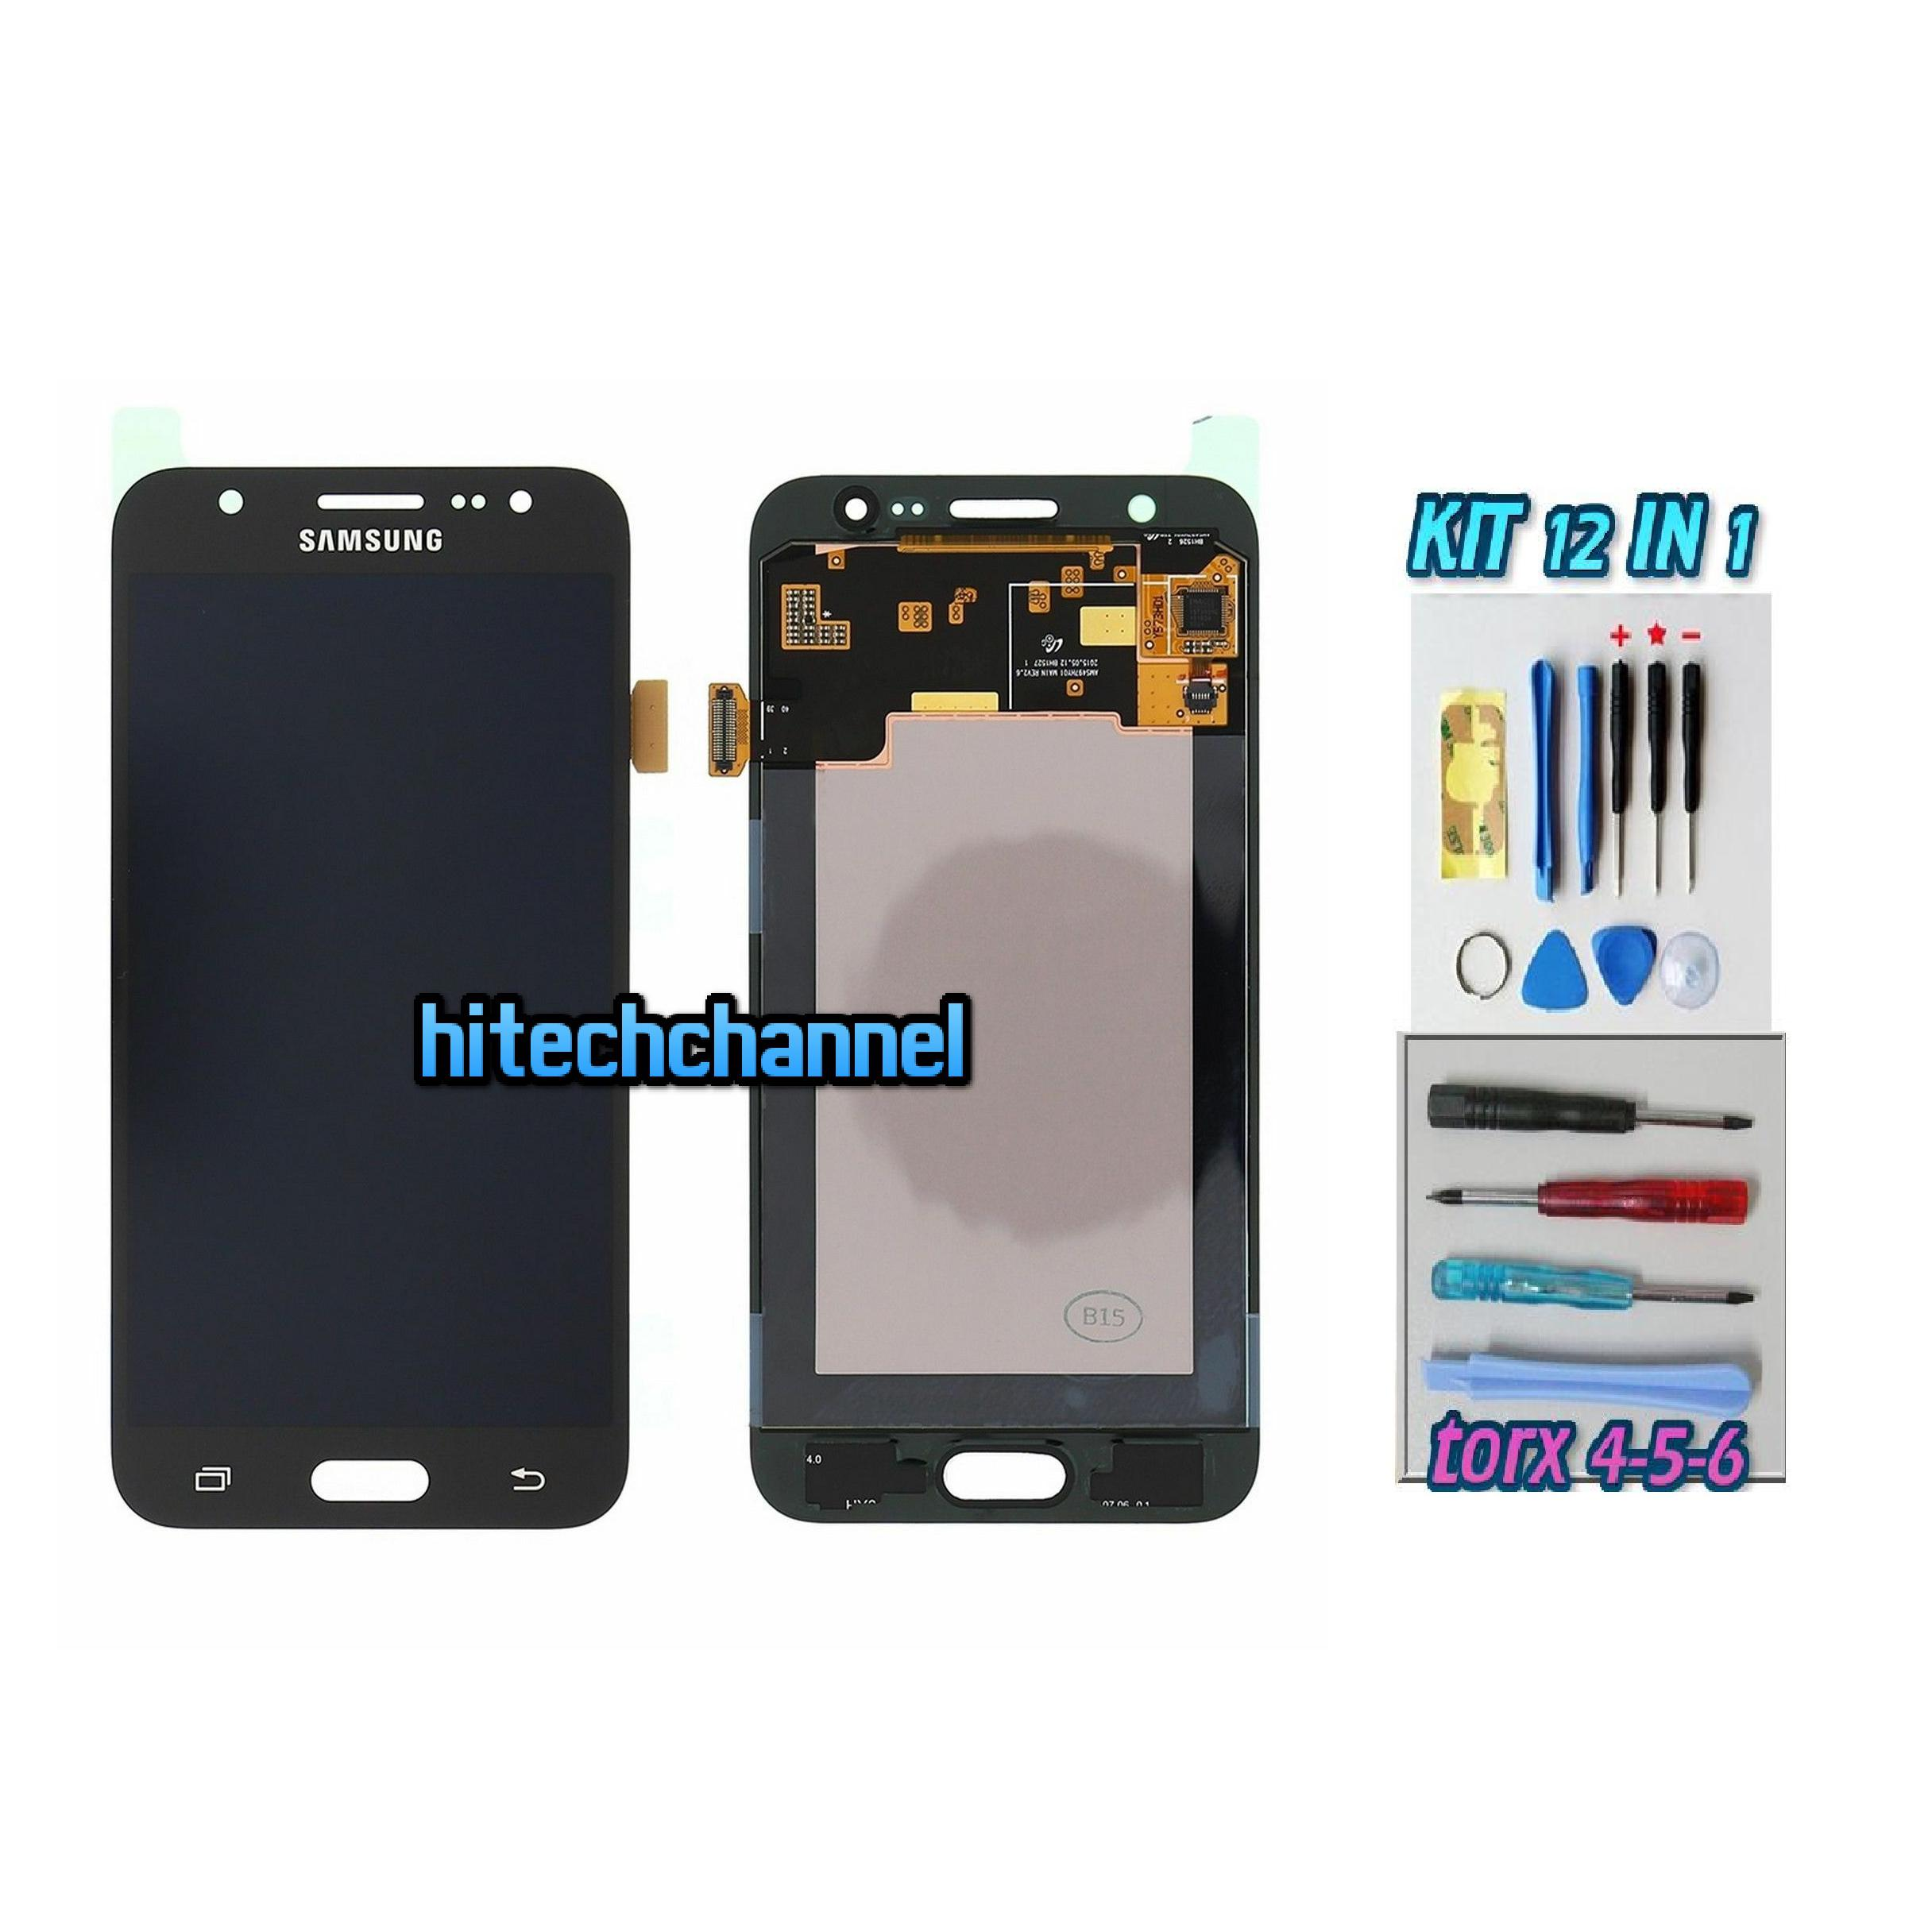 TOUCH SCREEN LCD DISPLAY NERO Samsung Galaxy J5 2015 J500 J500FN + kit 9 in 1 biadesivo e colla b7000